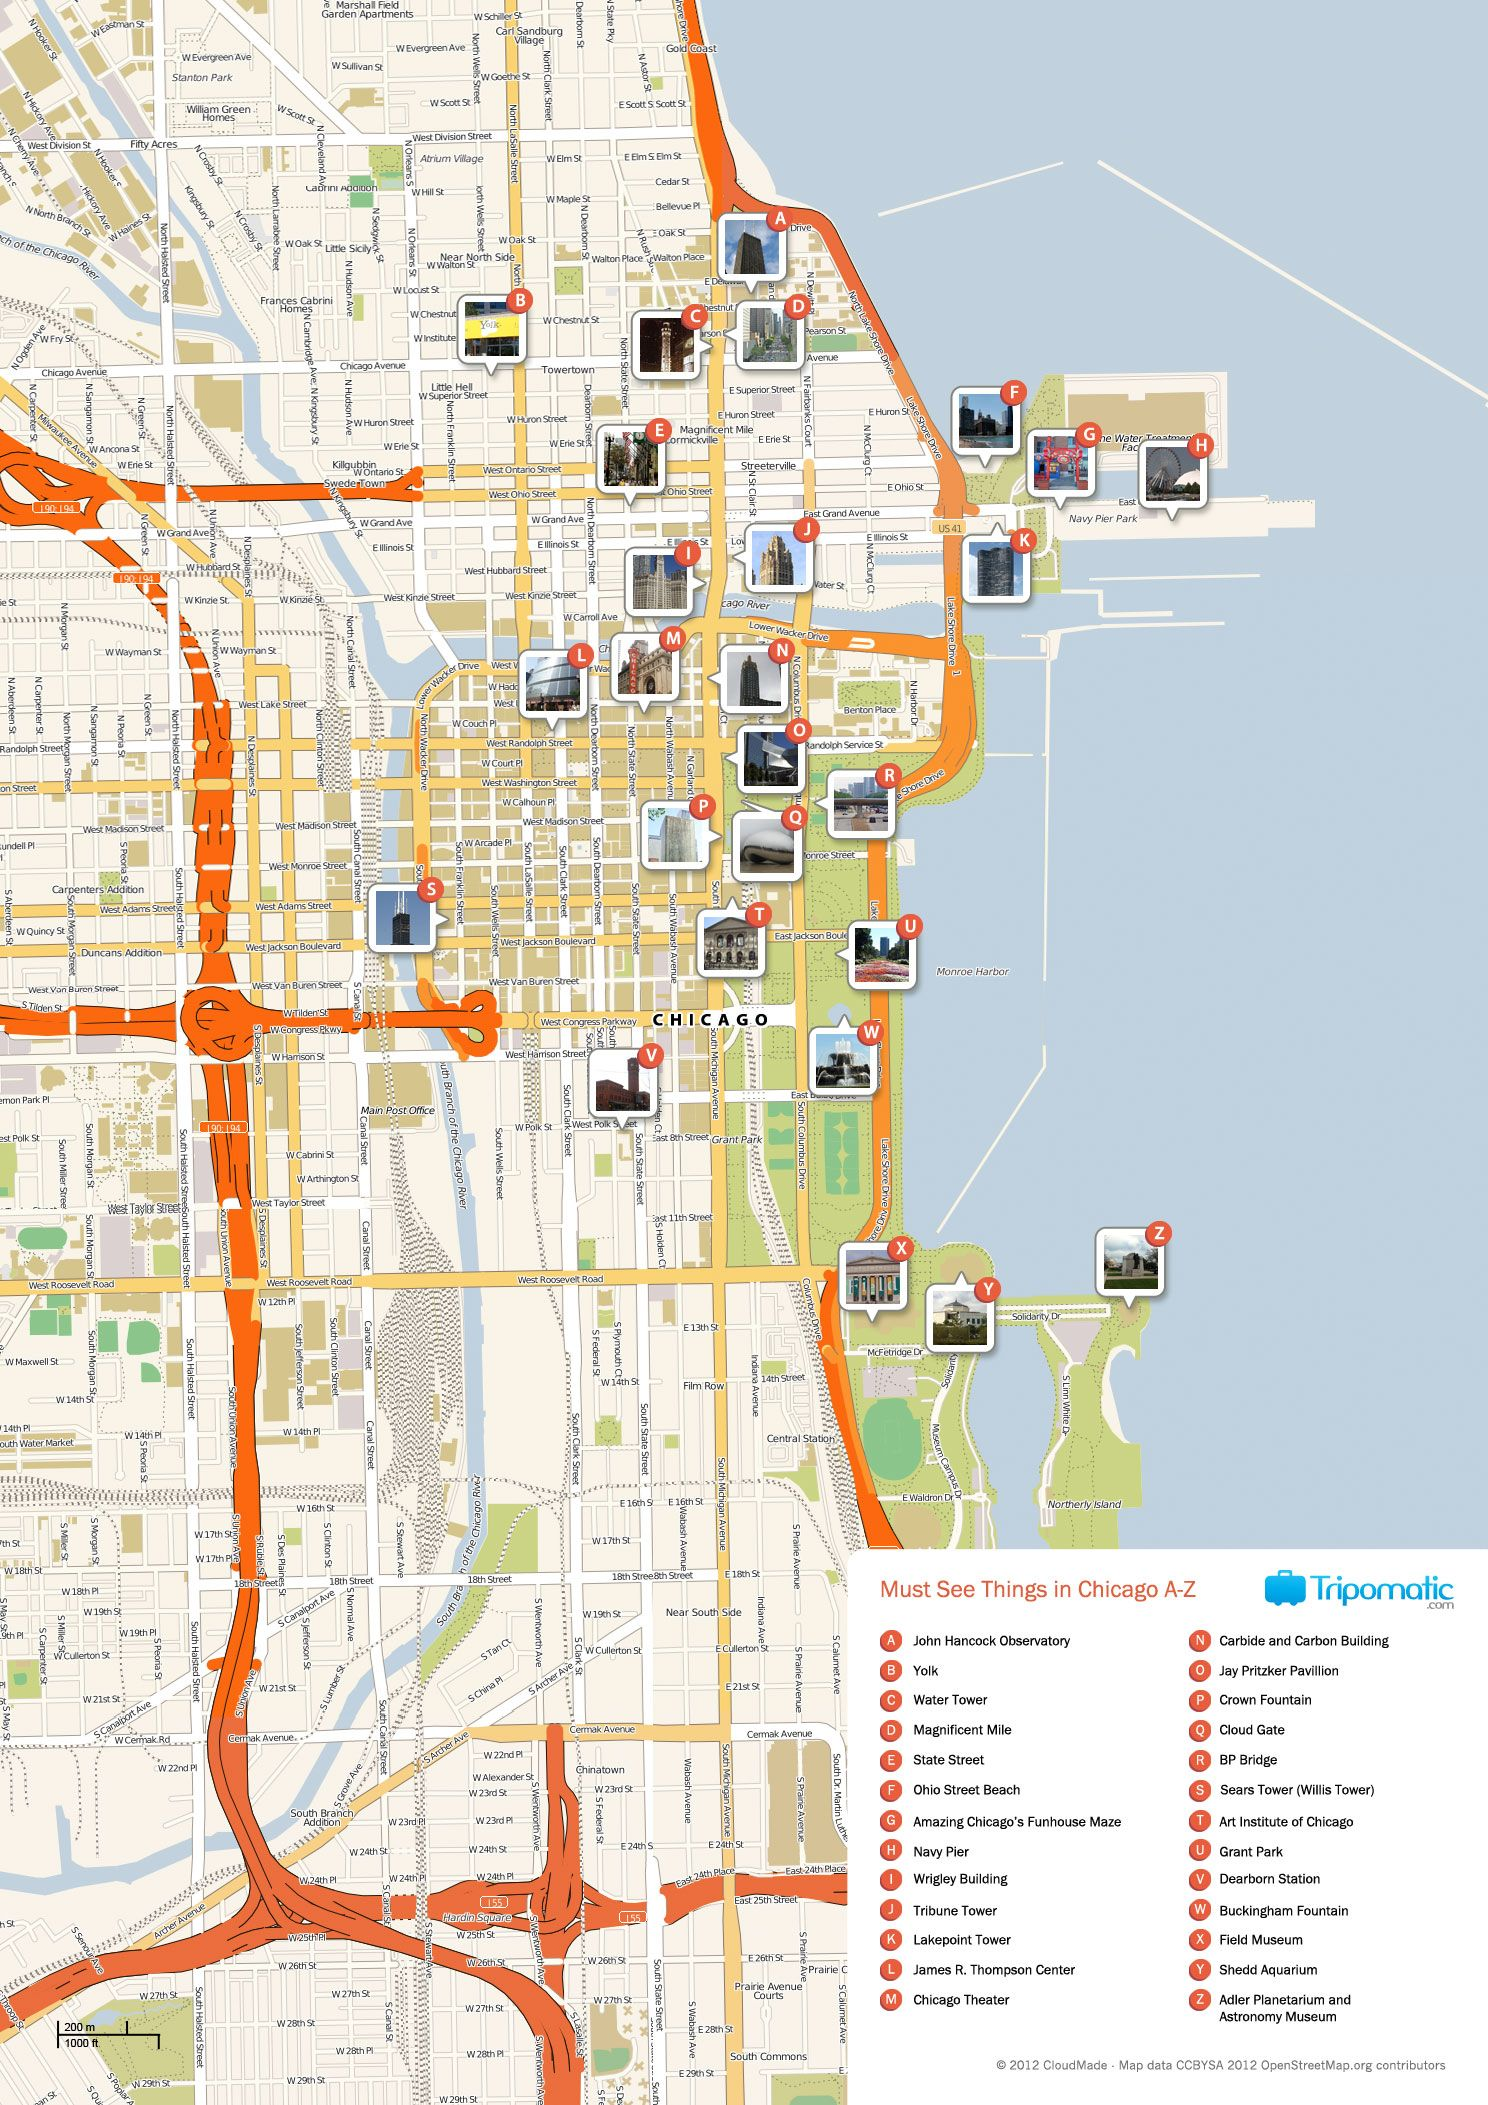 image relating to Printable Maps of Chicago titled Pin upon Generate